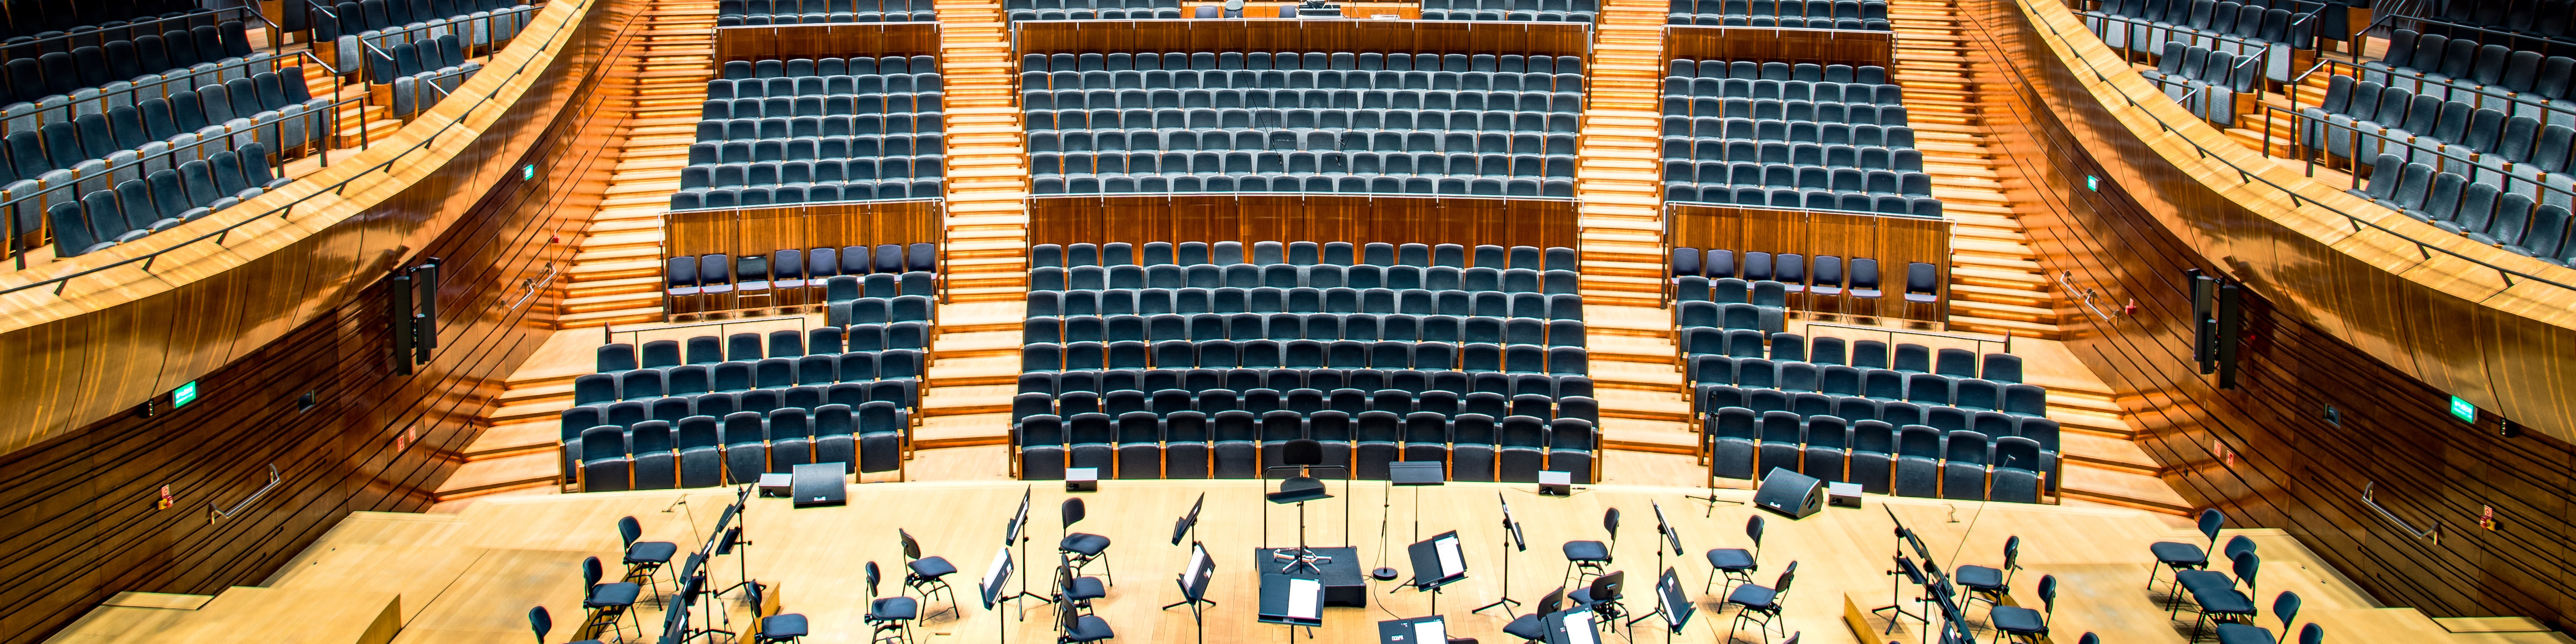 A large performance hall with plenty of reverb